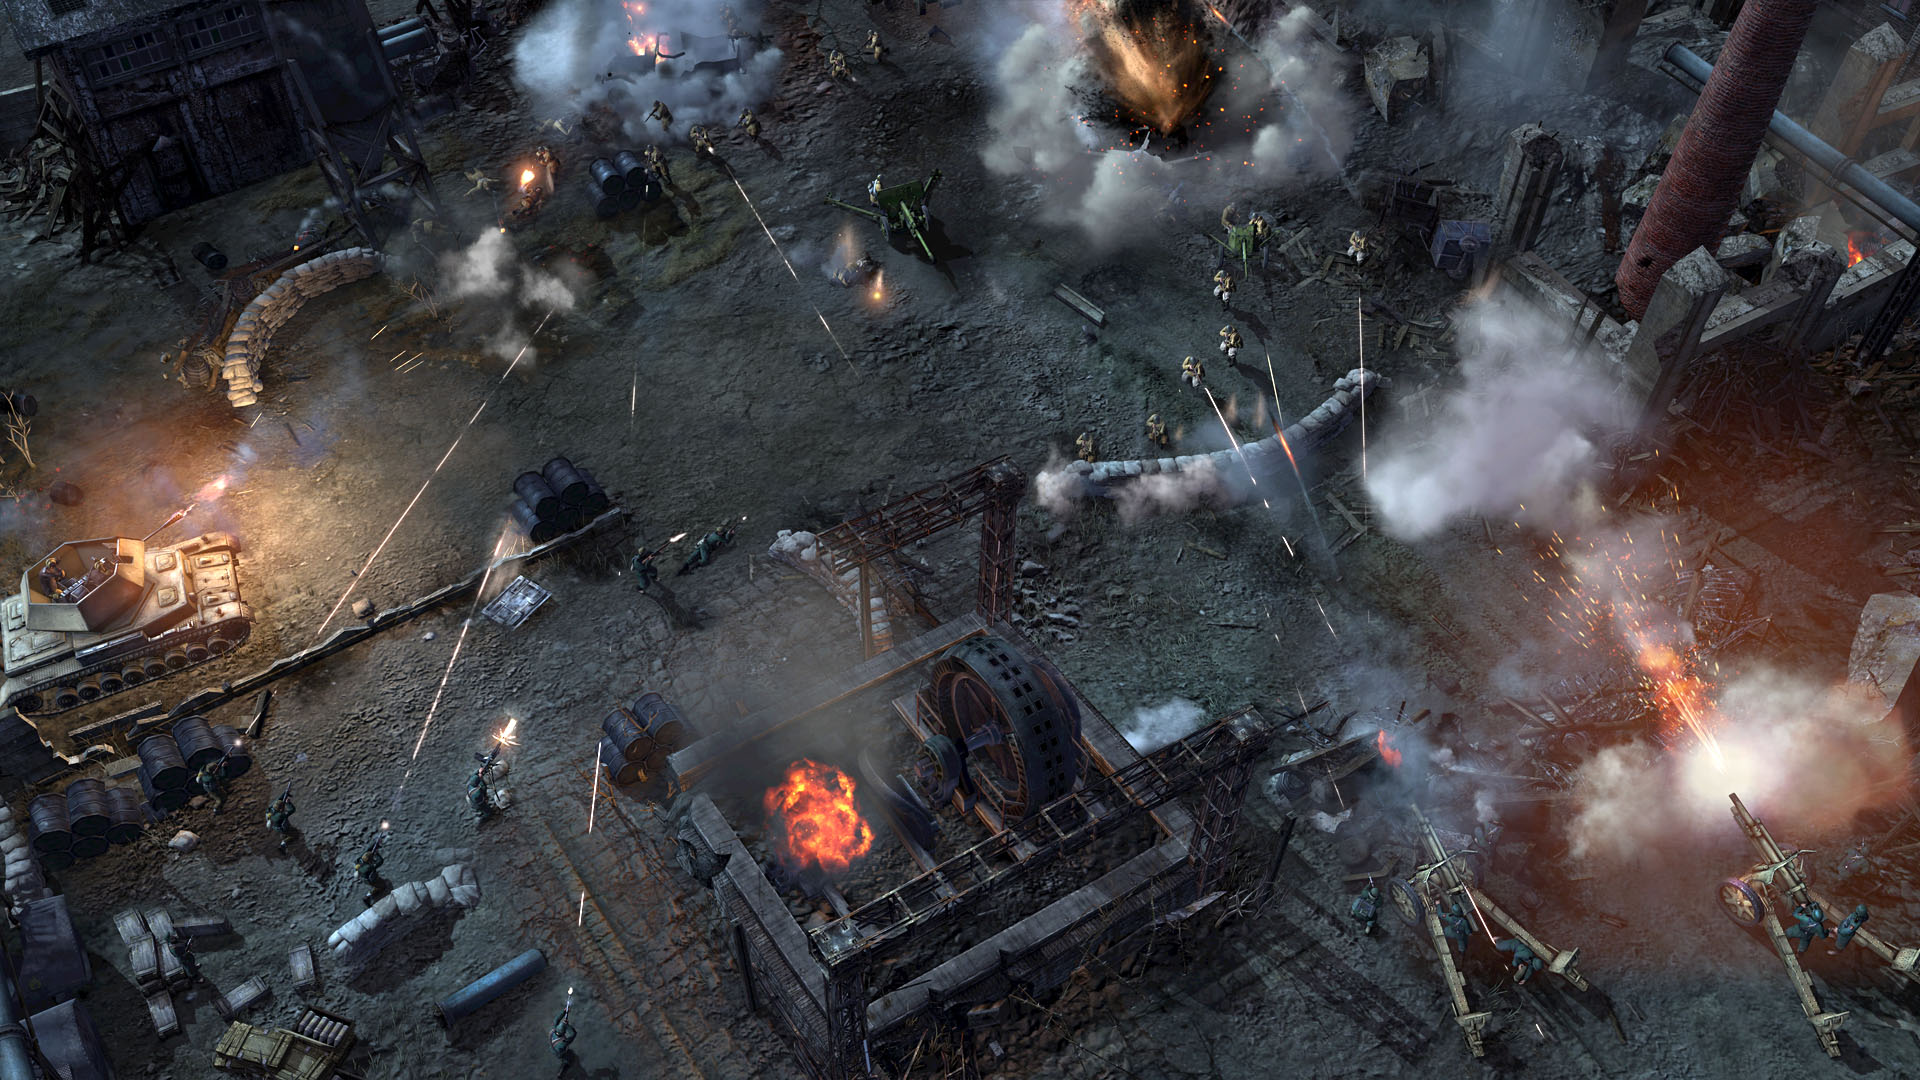 Amazon Com Company Of Heroes 2 Master Collection Online Game Code Video Games